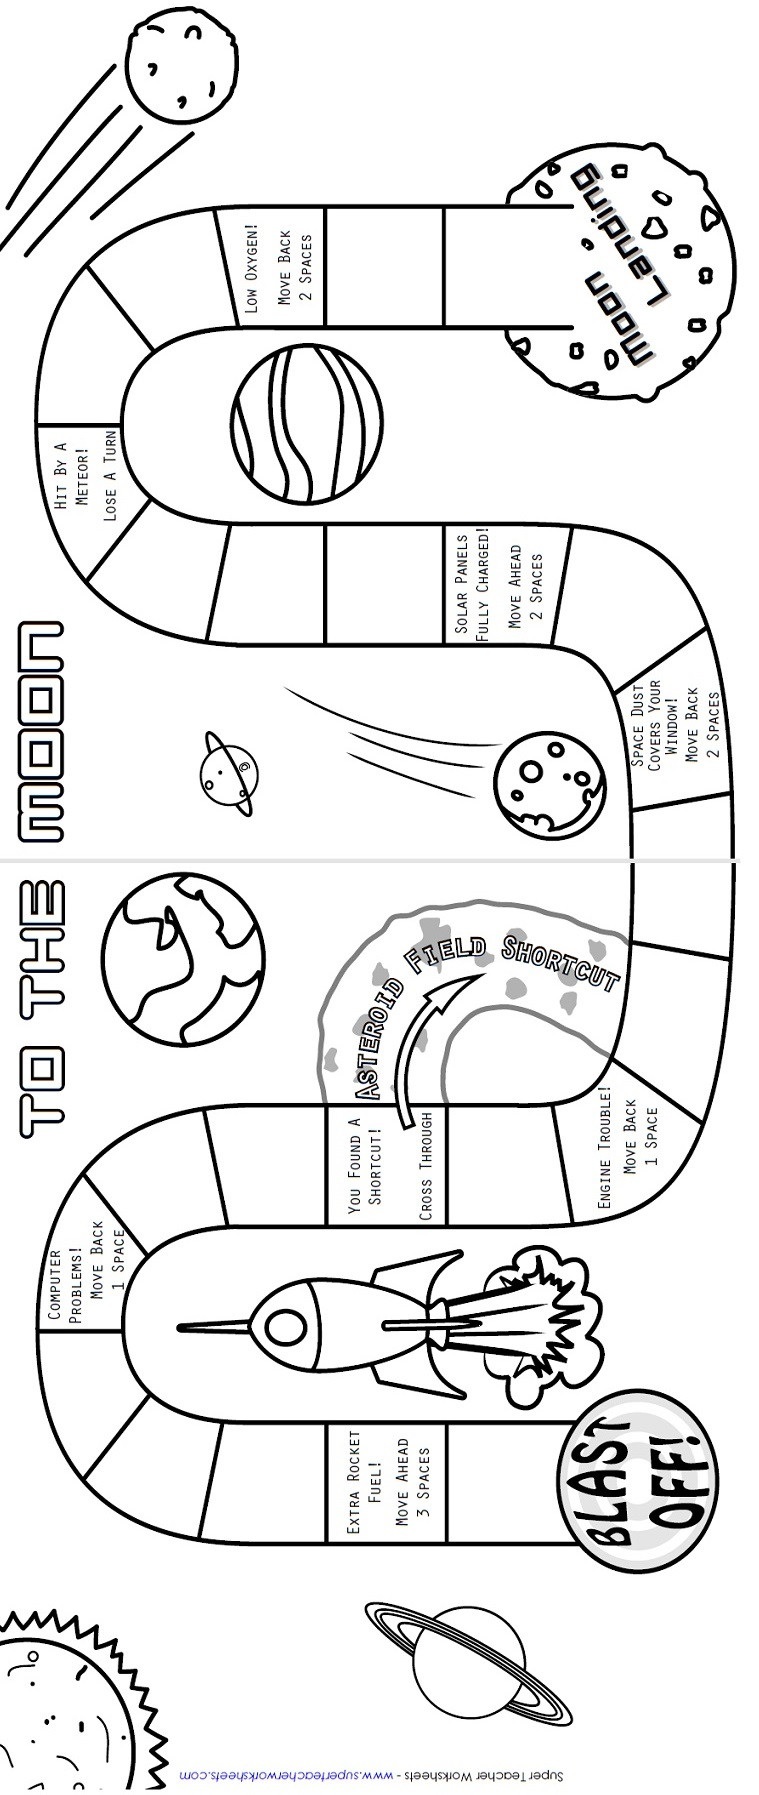 Moon Phases Worksheet 5th Grade solar System and Planets Worksheets